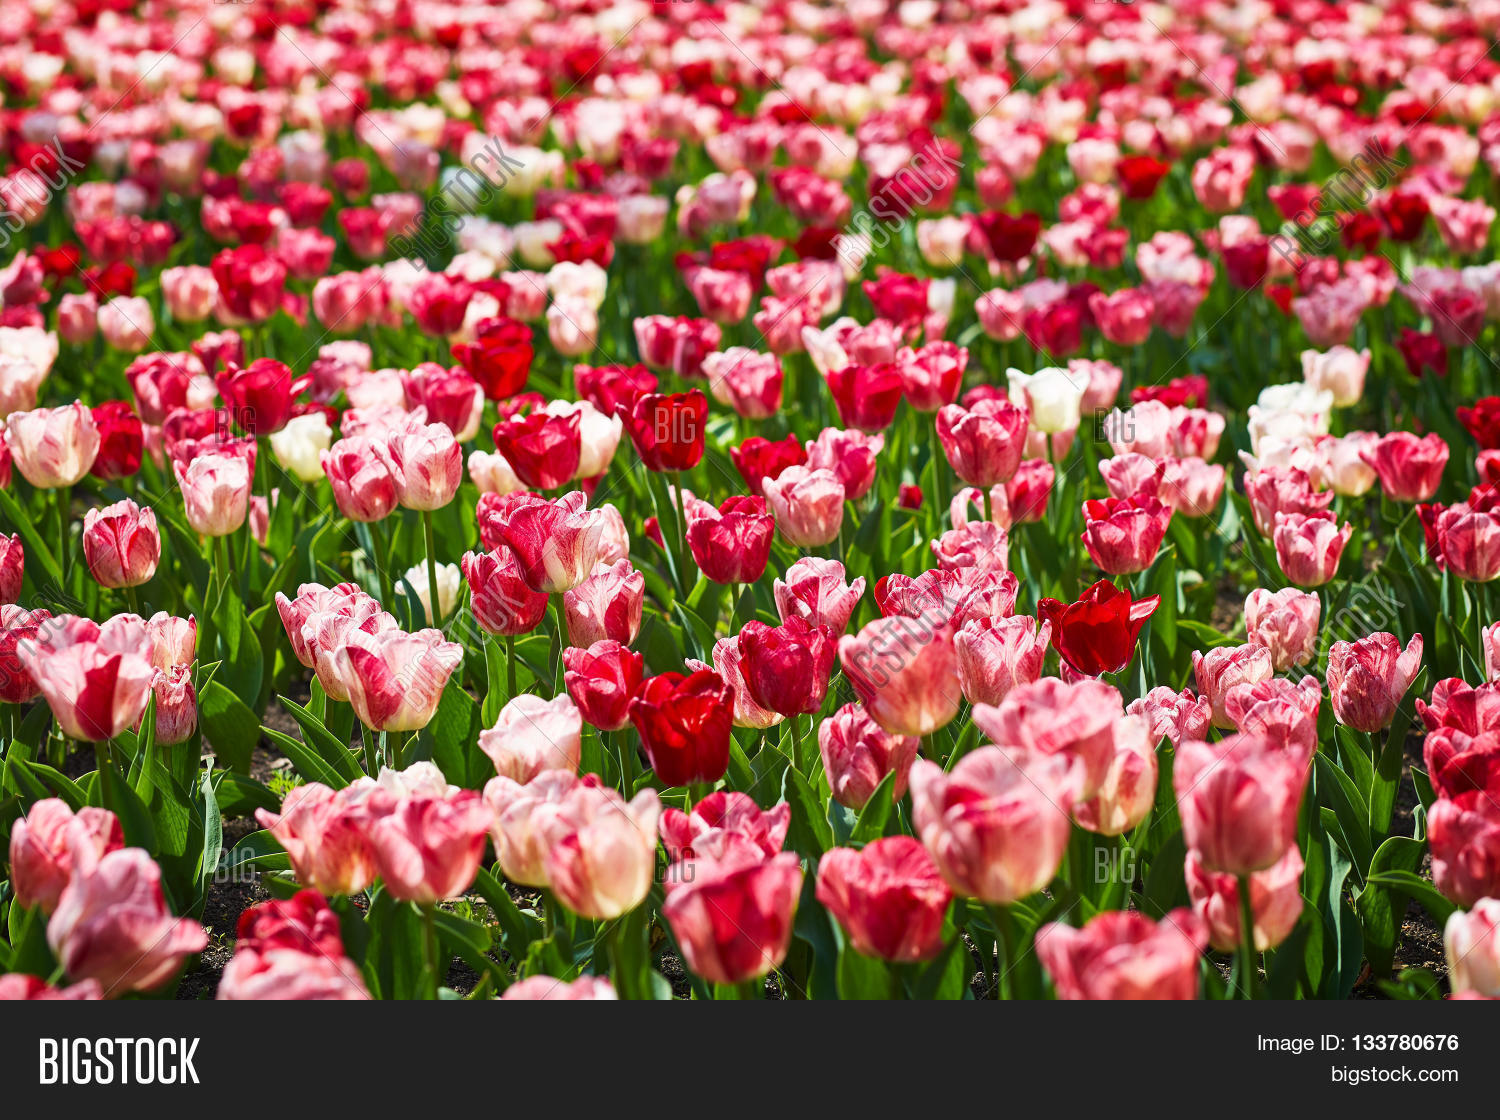 Field Spring Tulips Image Photo Free Trial Bigstock